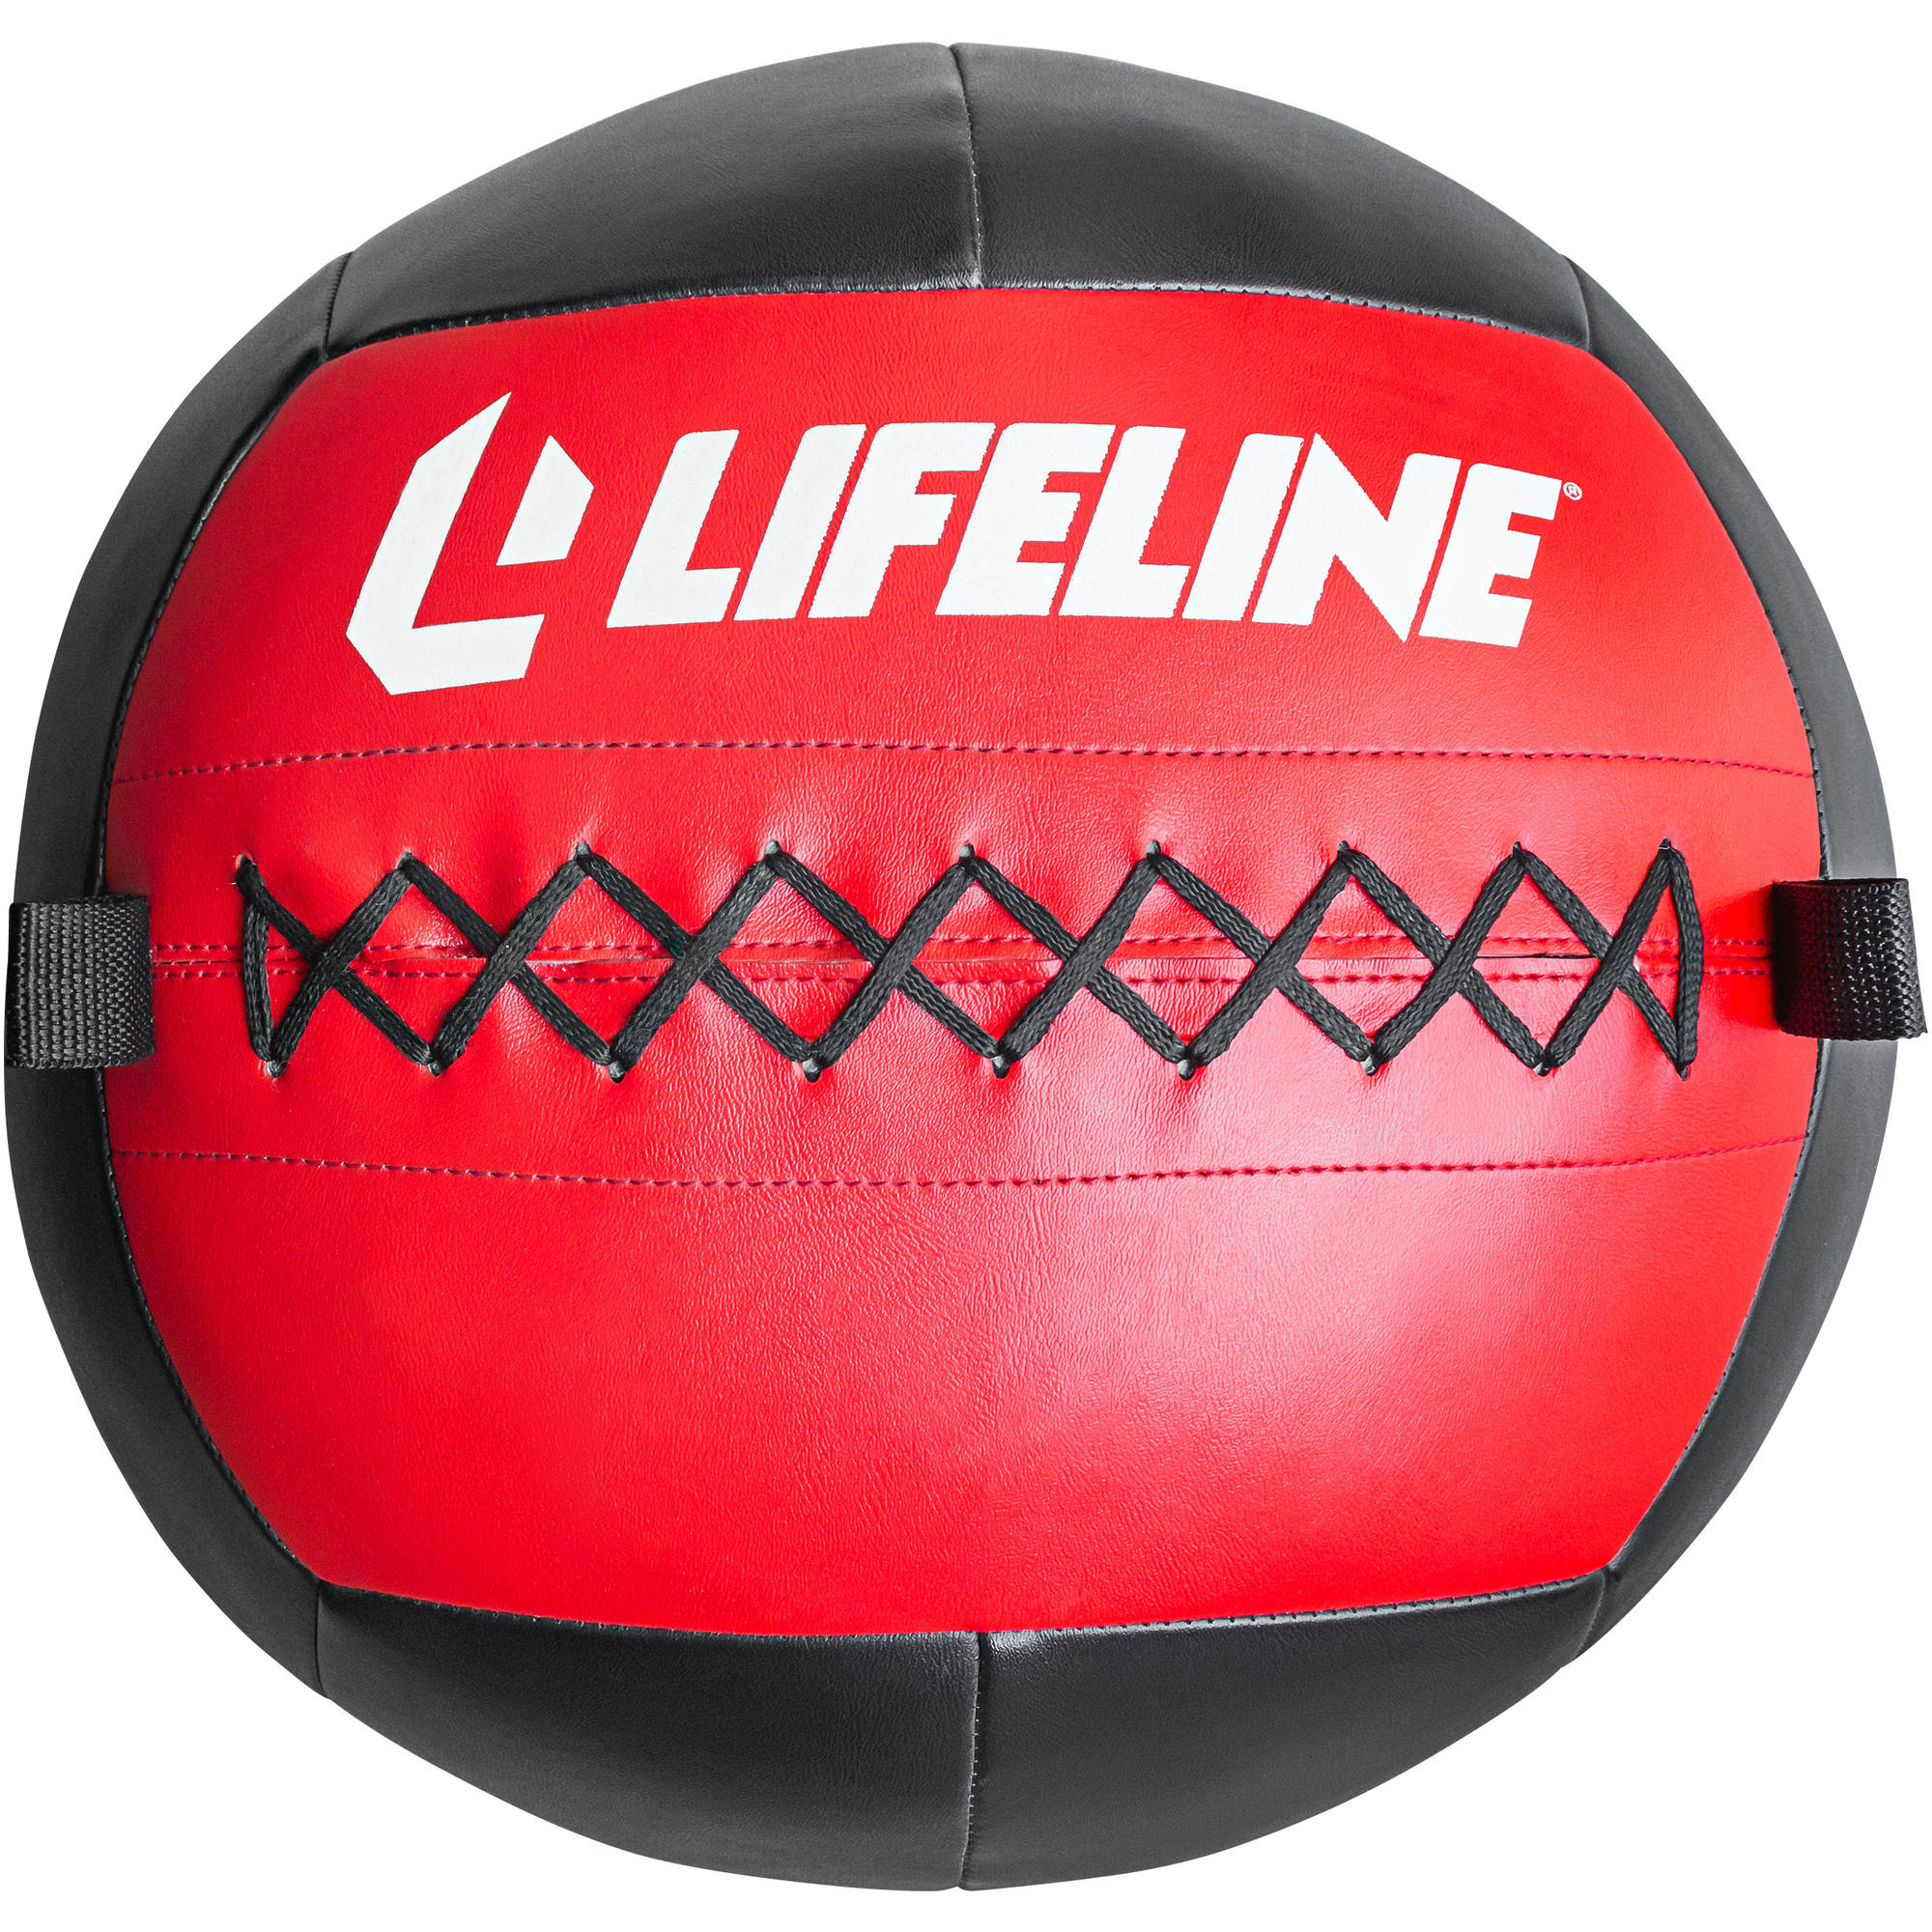 Lifeline Wall Ball-16 lbs